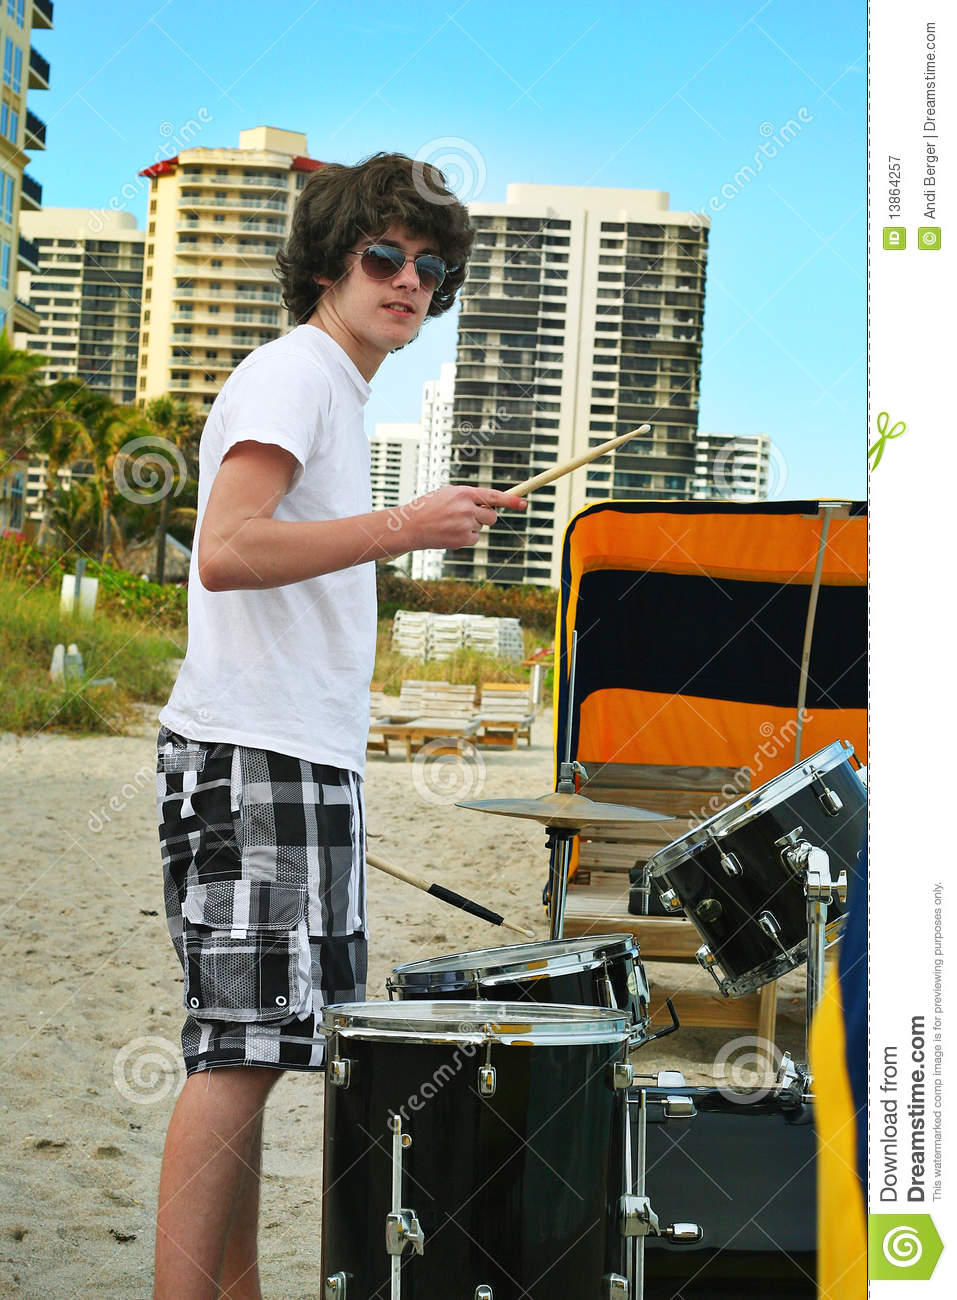 Teen boy with drums on the beach